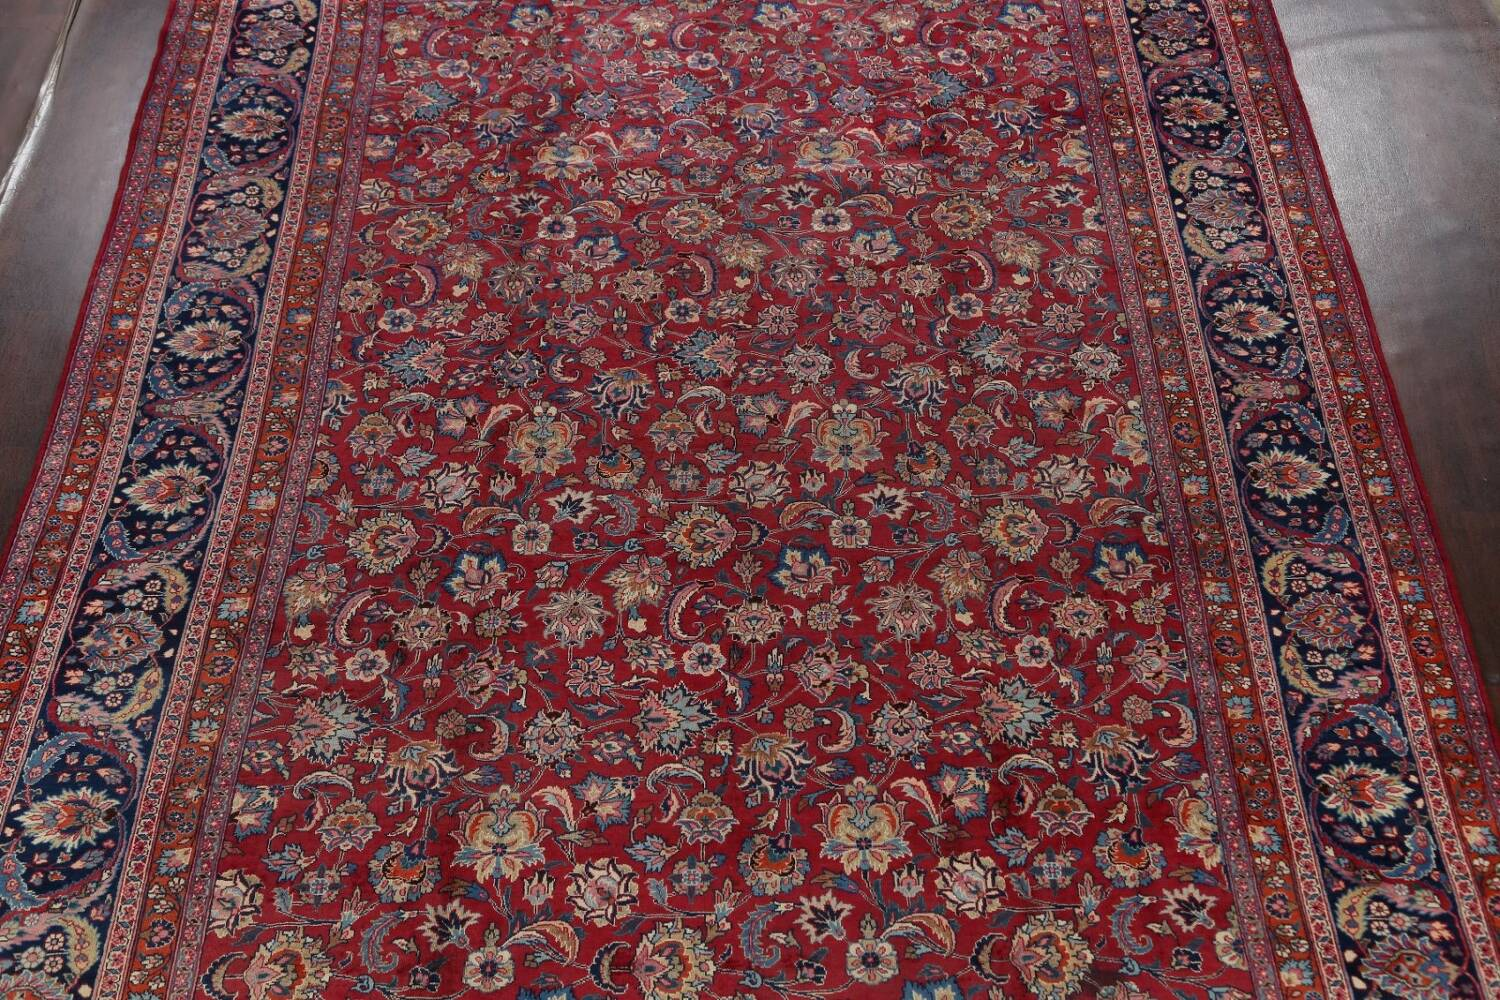 Antique Floral Vegetable Dye Mashad Persian Area Rug 10x13 image 3